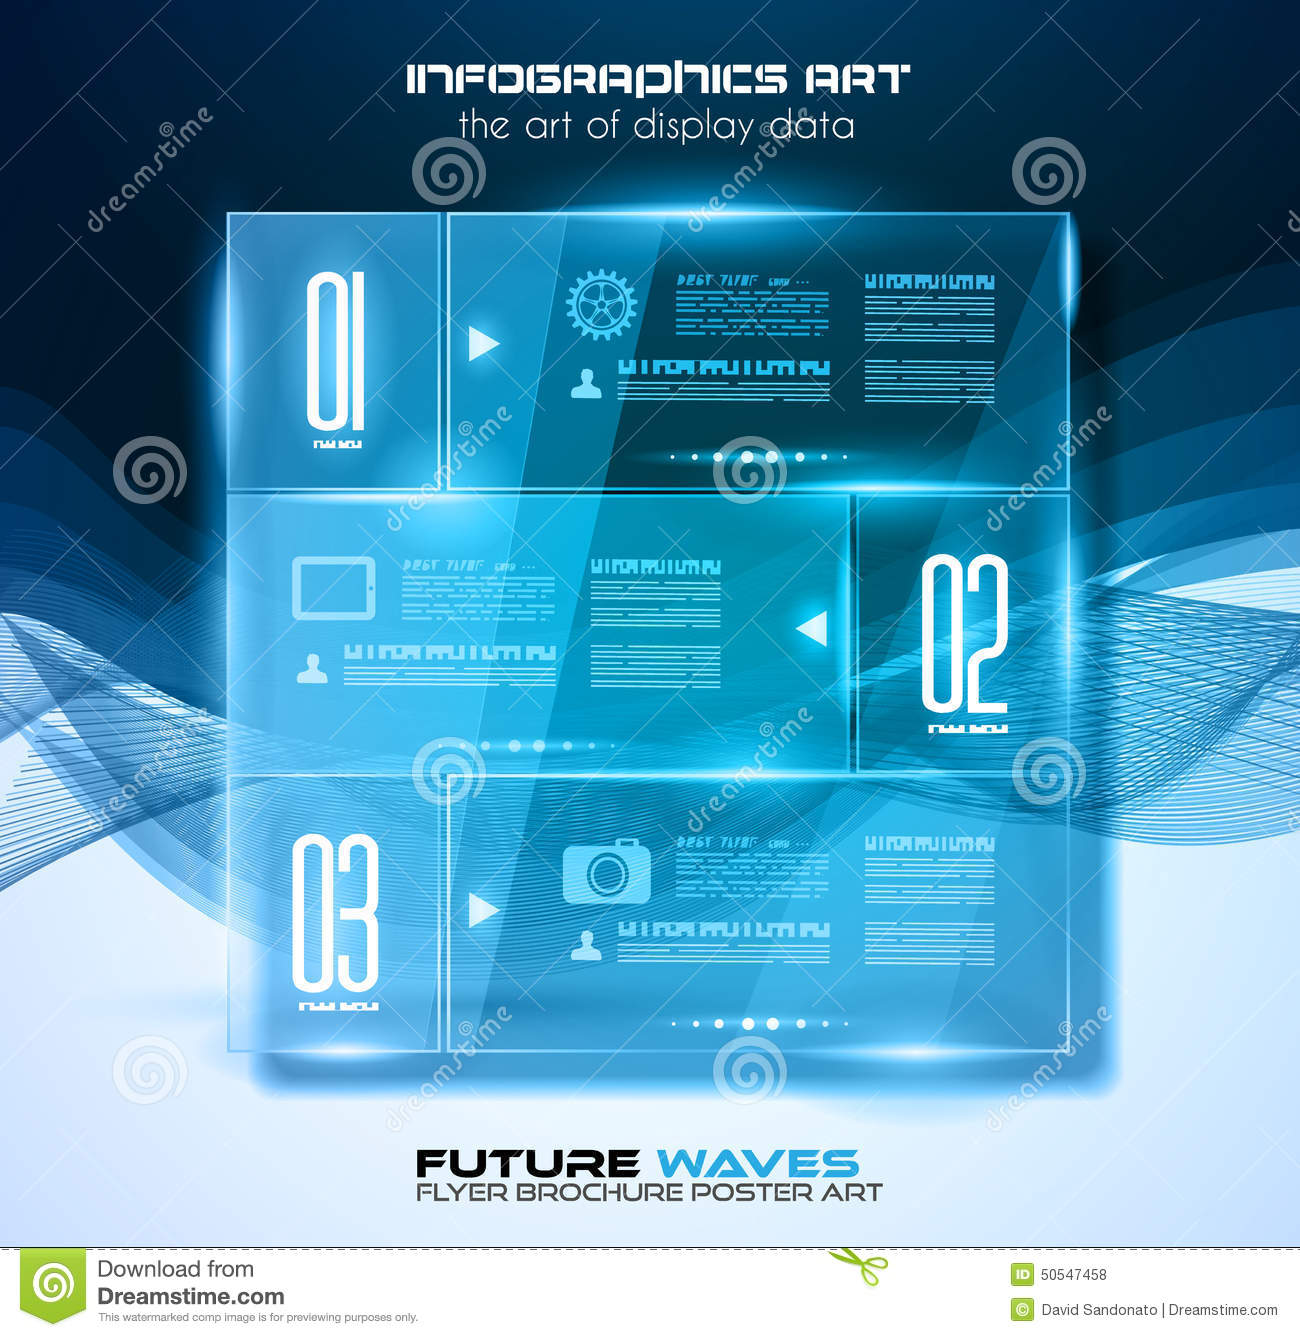 Infographic Layout With Spotlights Over An High Tech